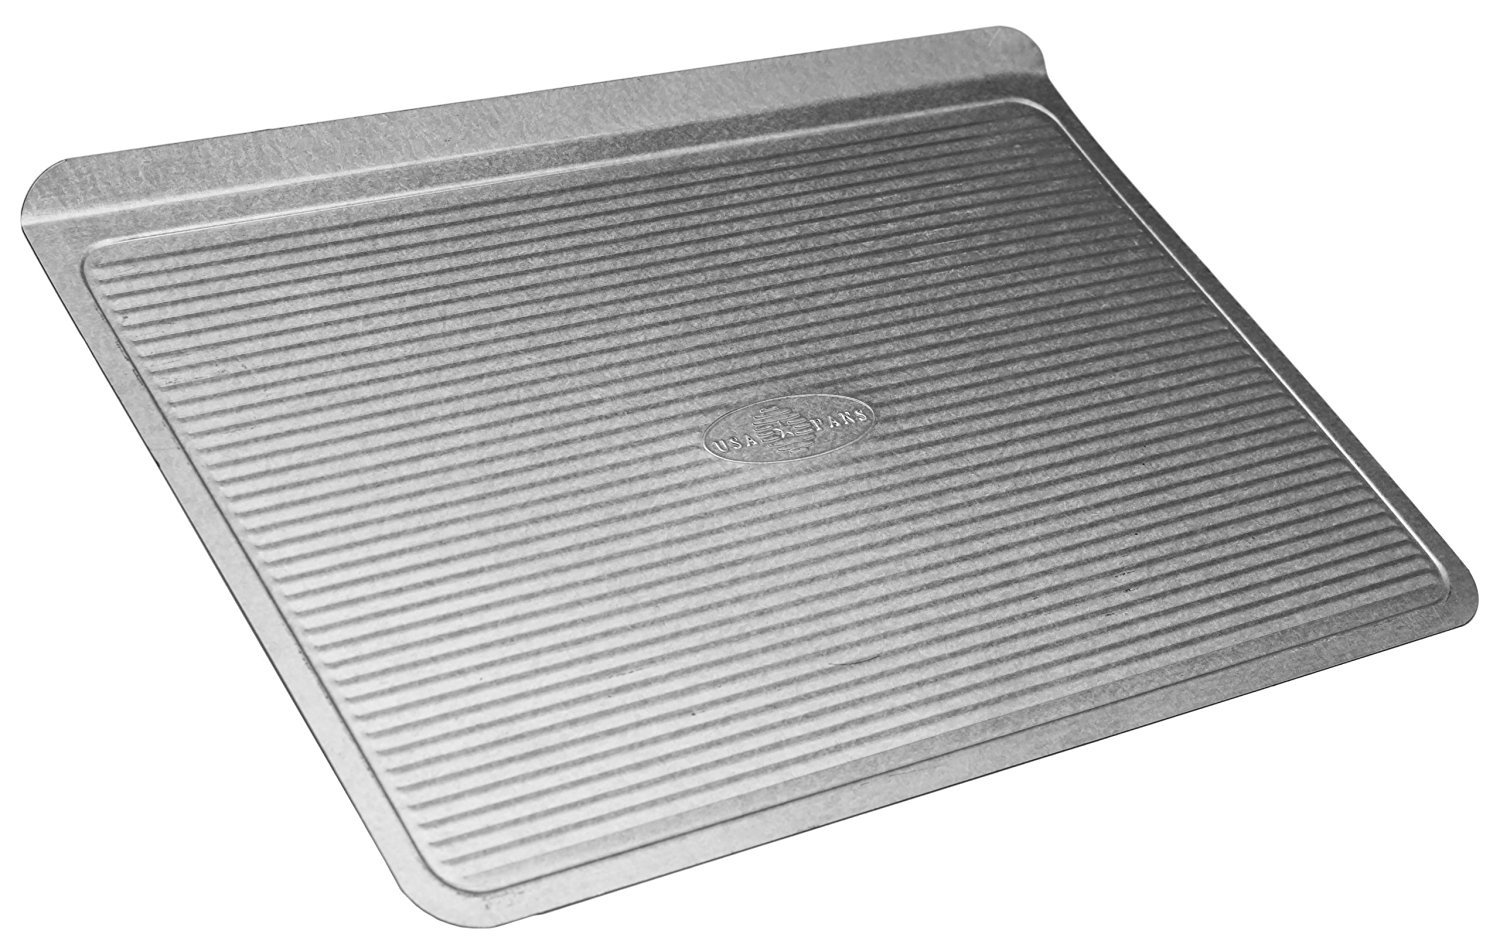 Usa Pan 1030lc Cookie And Jelly Roll Pan, 17'' X 12.25'' (Pack of 6)